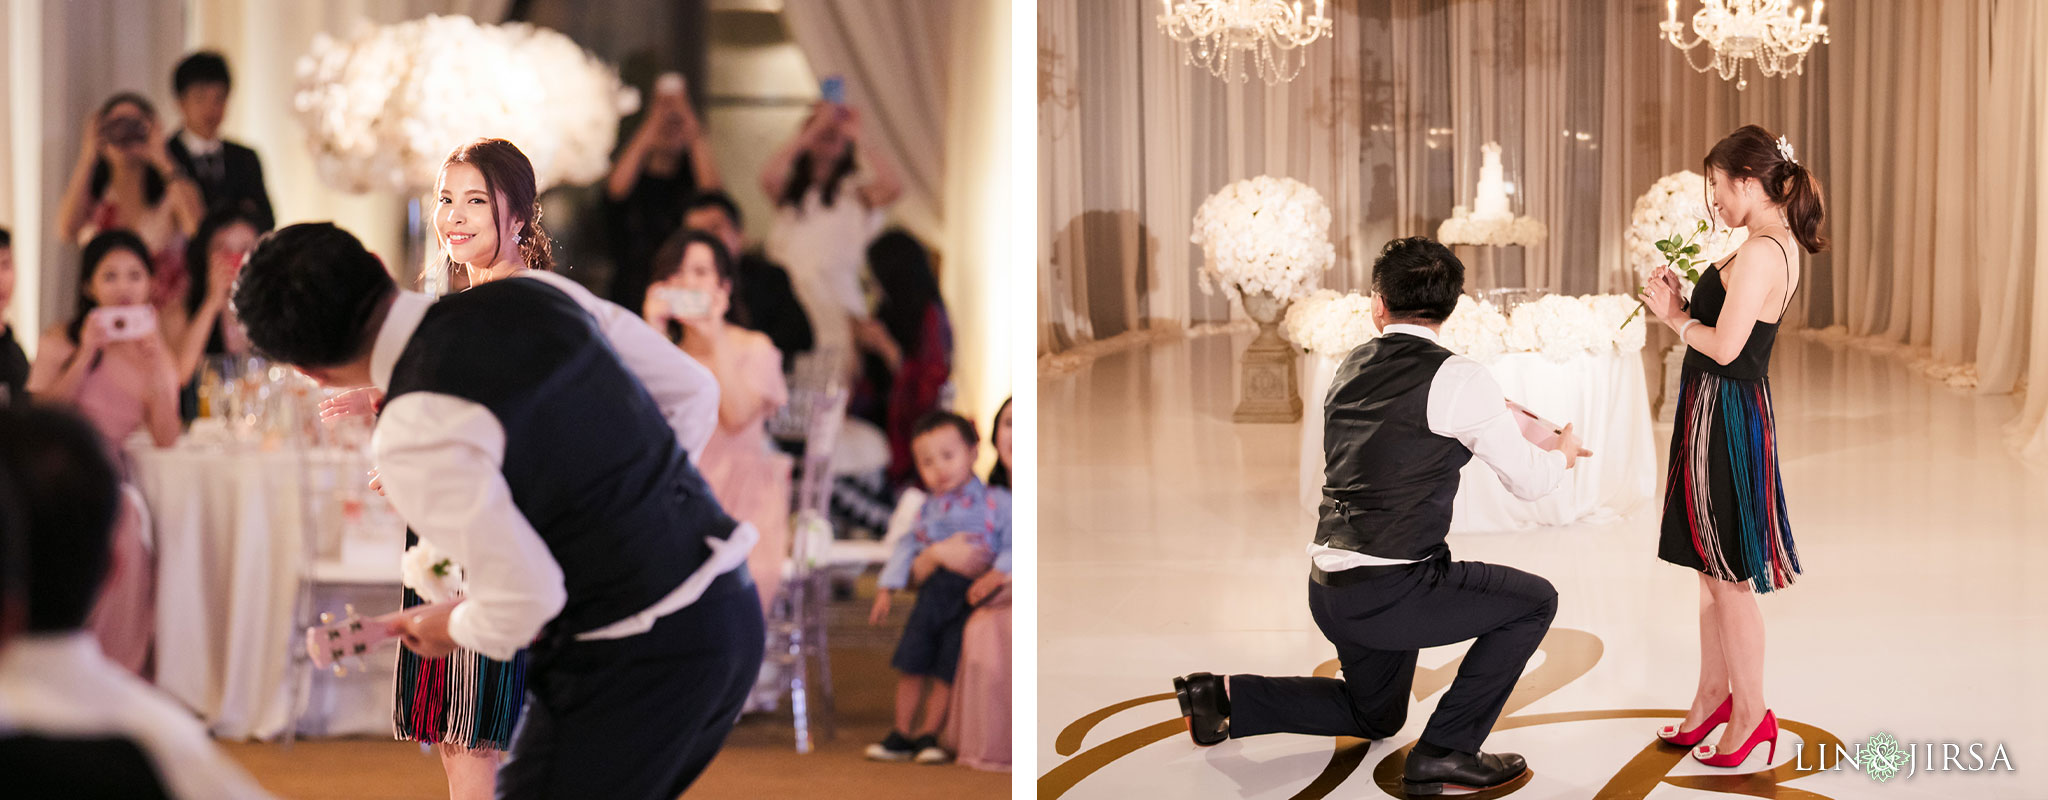 50 pelican hill orange county chinese wedding photography